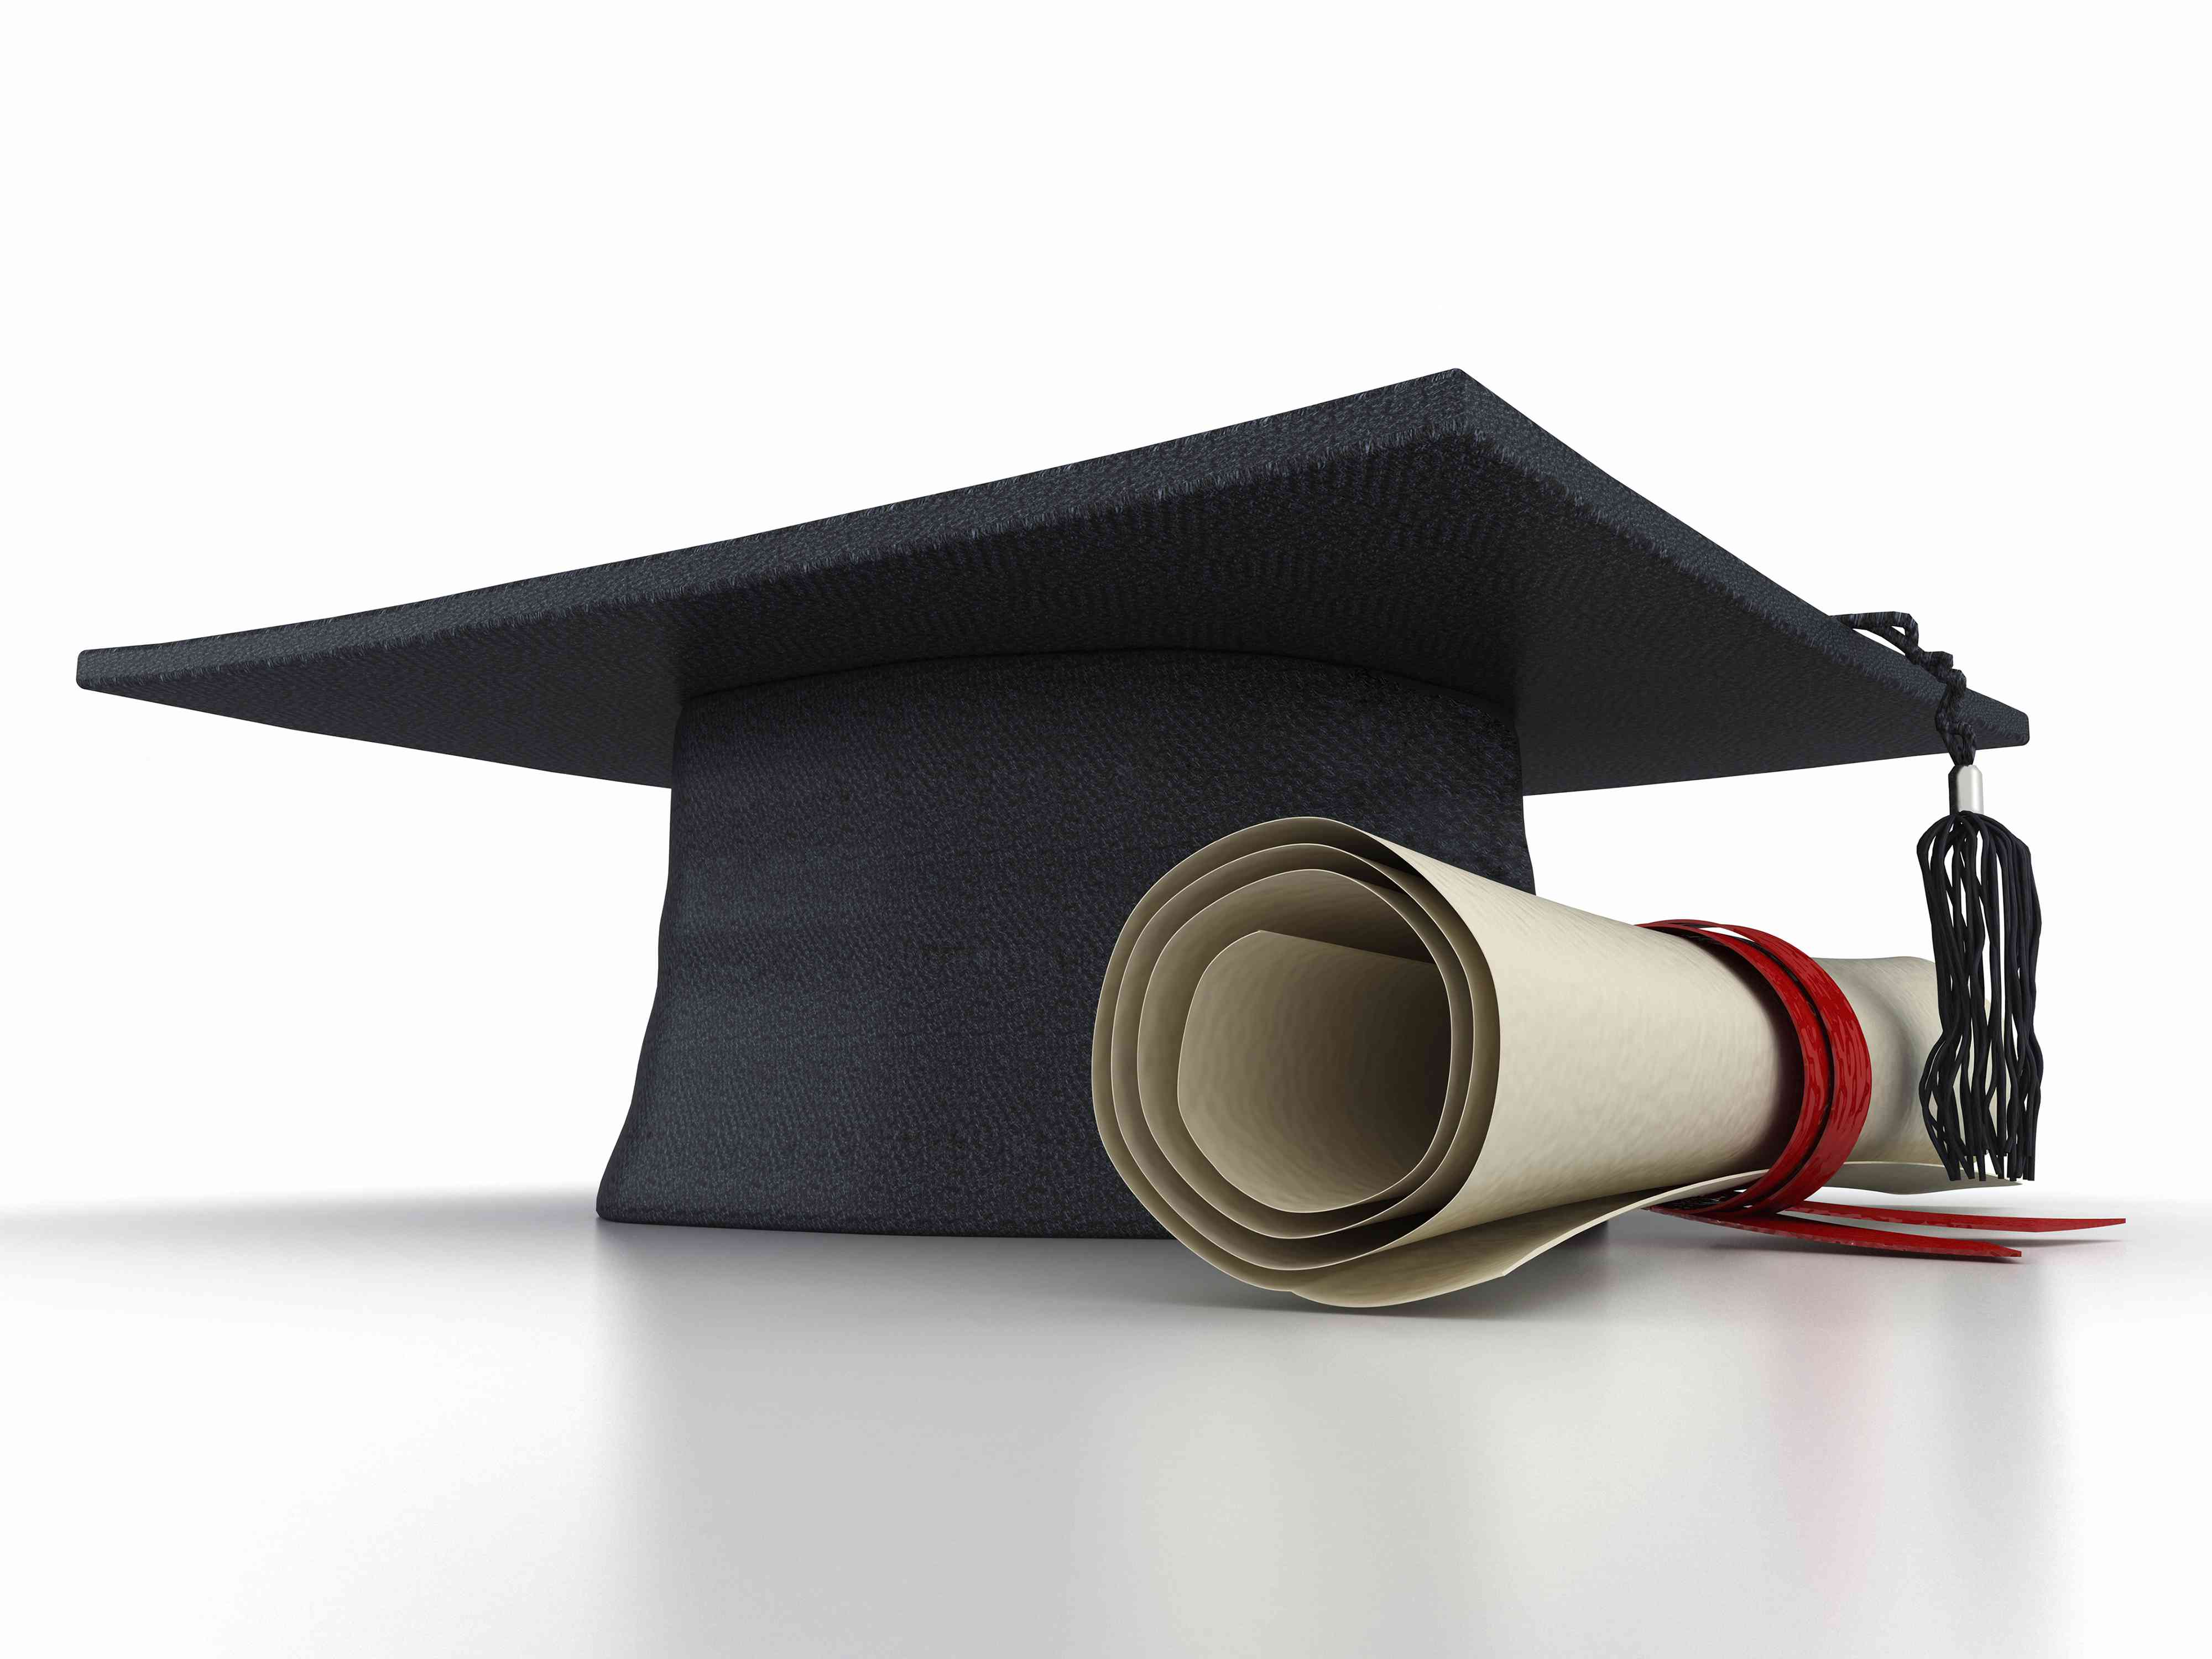 a rolled diploma tied with a ribbon lays next to a mortarboard cap